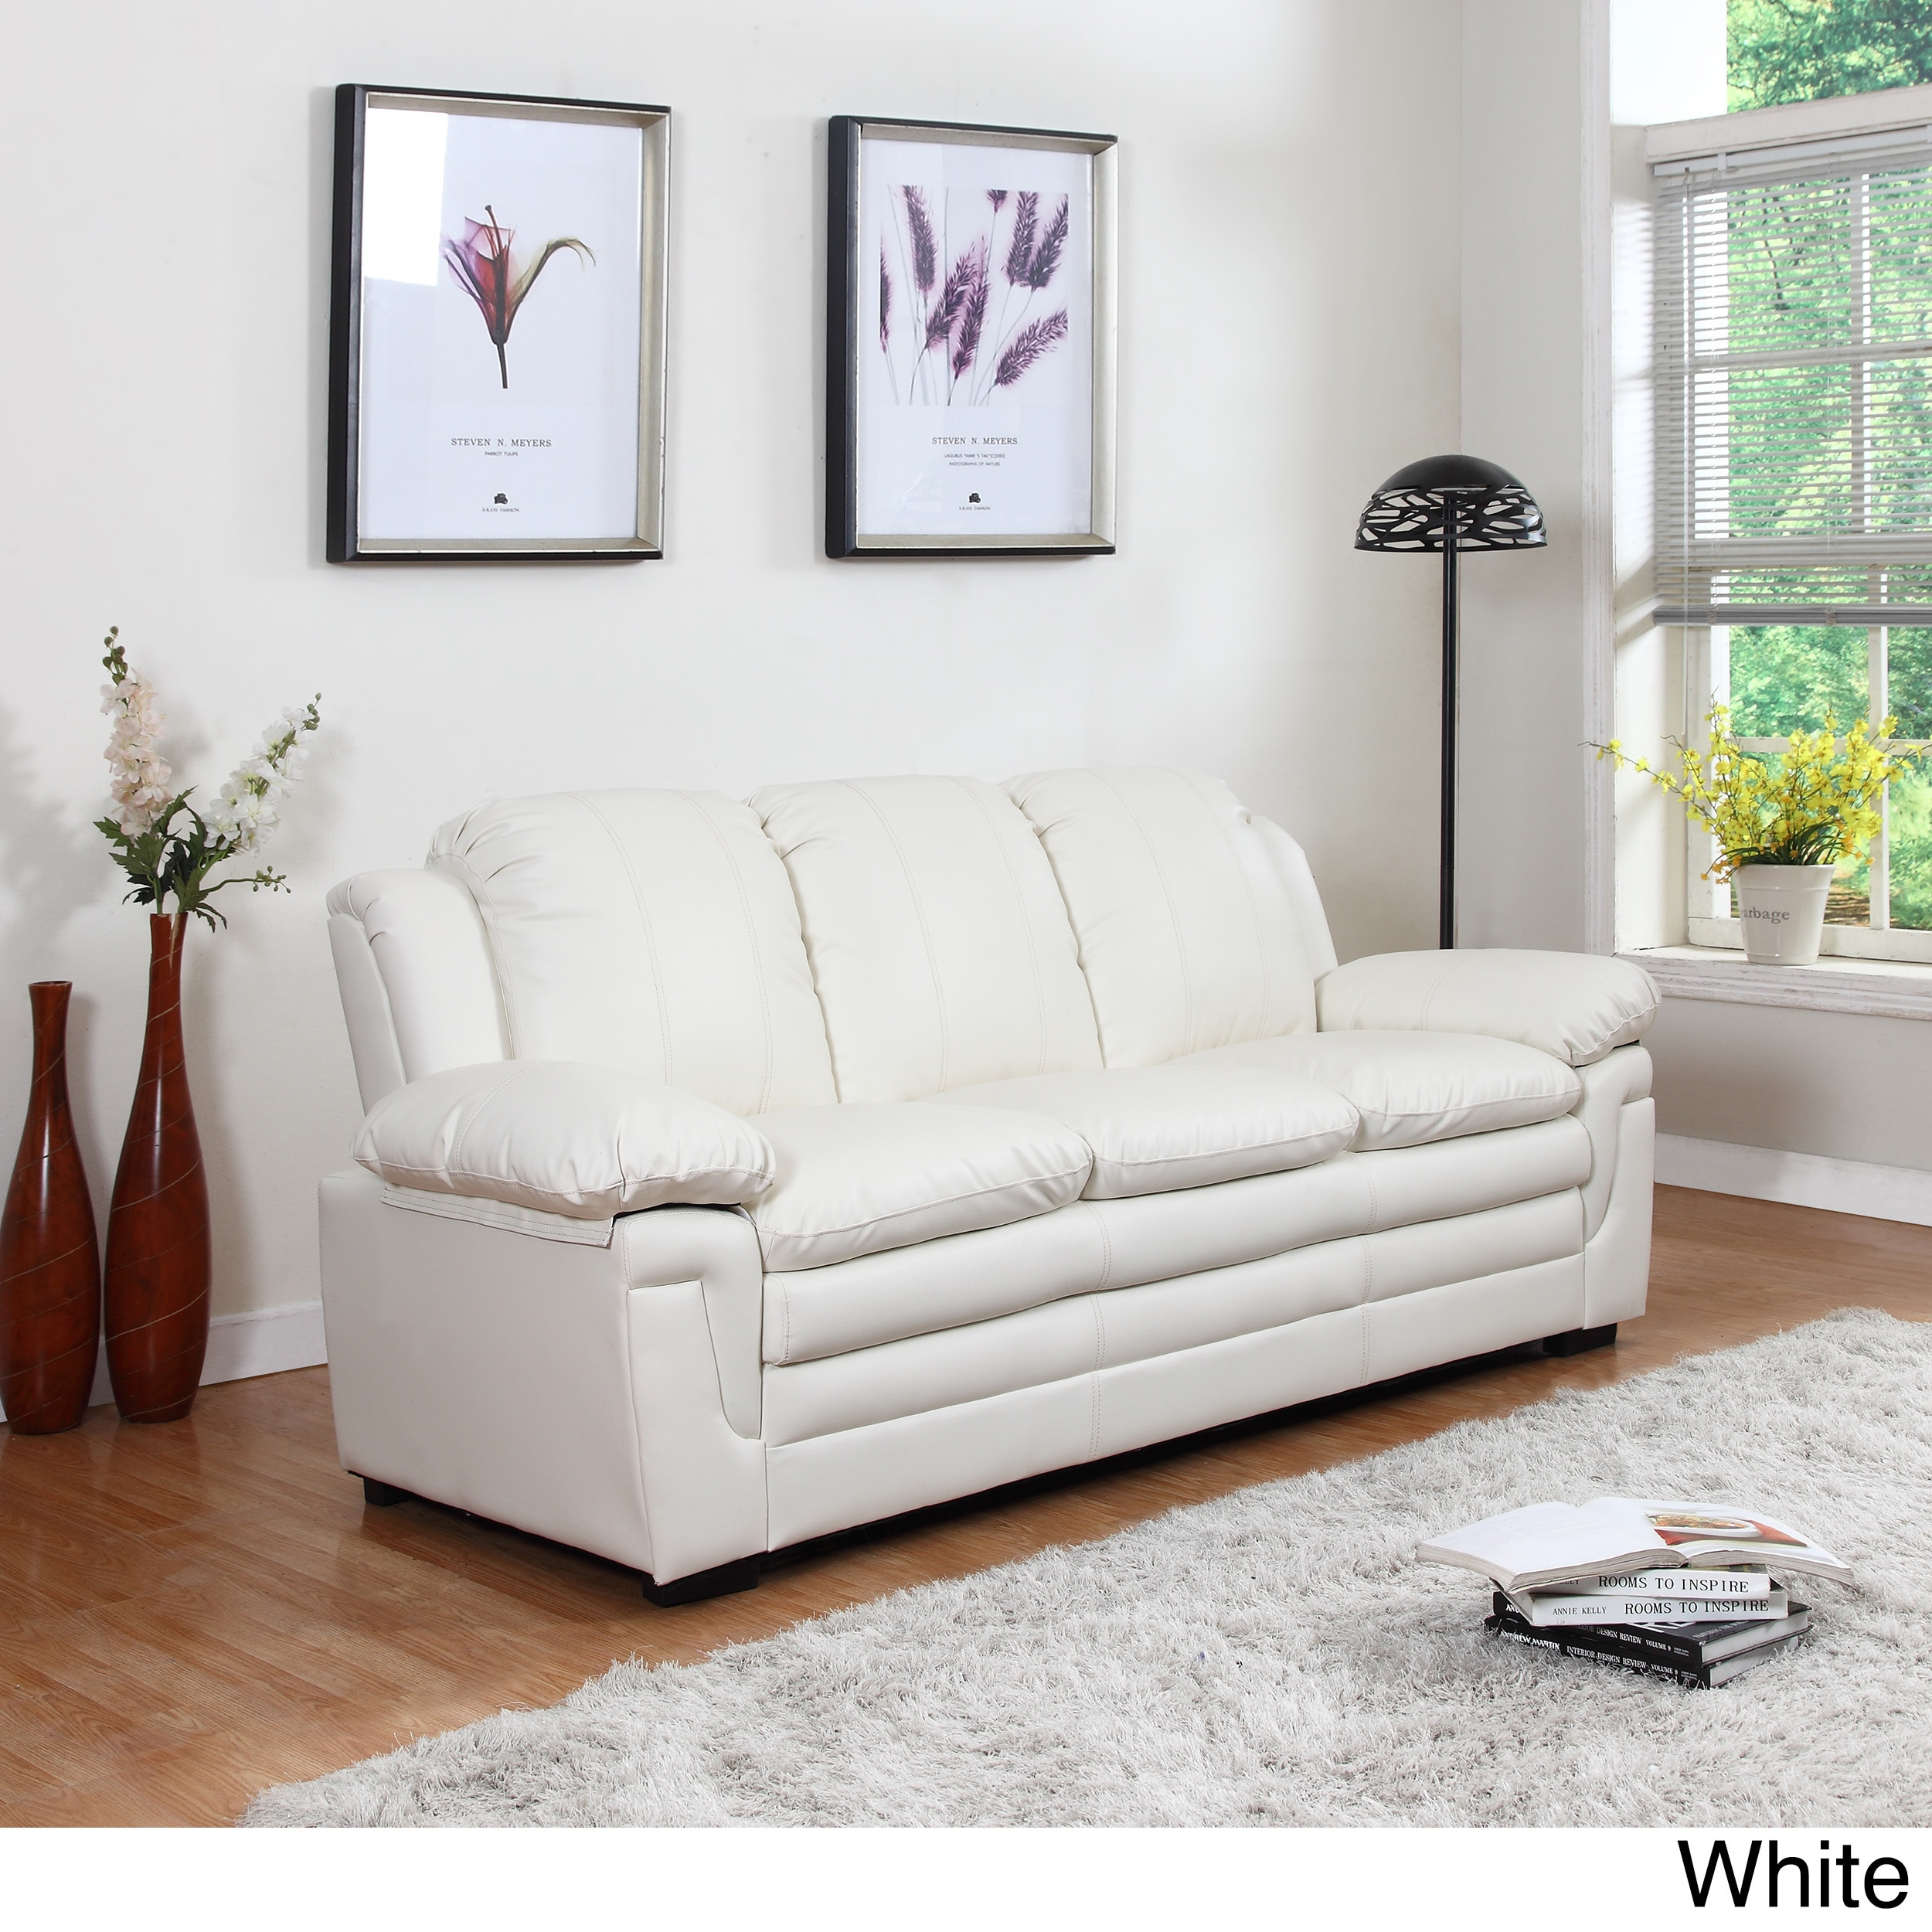 Shop Classic Bonded Leather Living Room Sofa with White Stitch ...